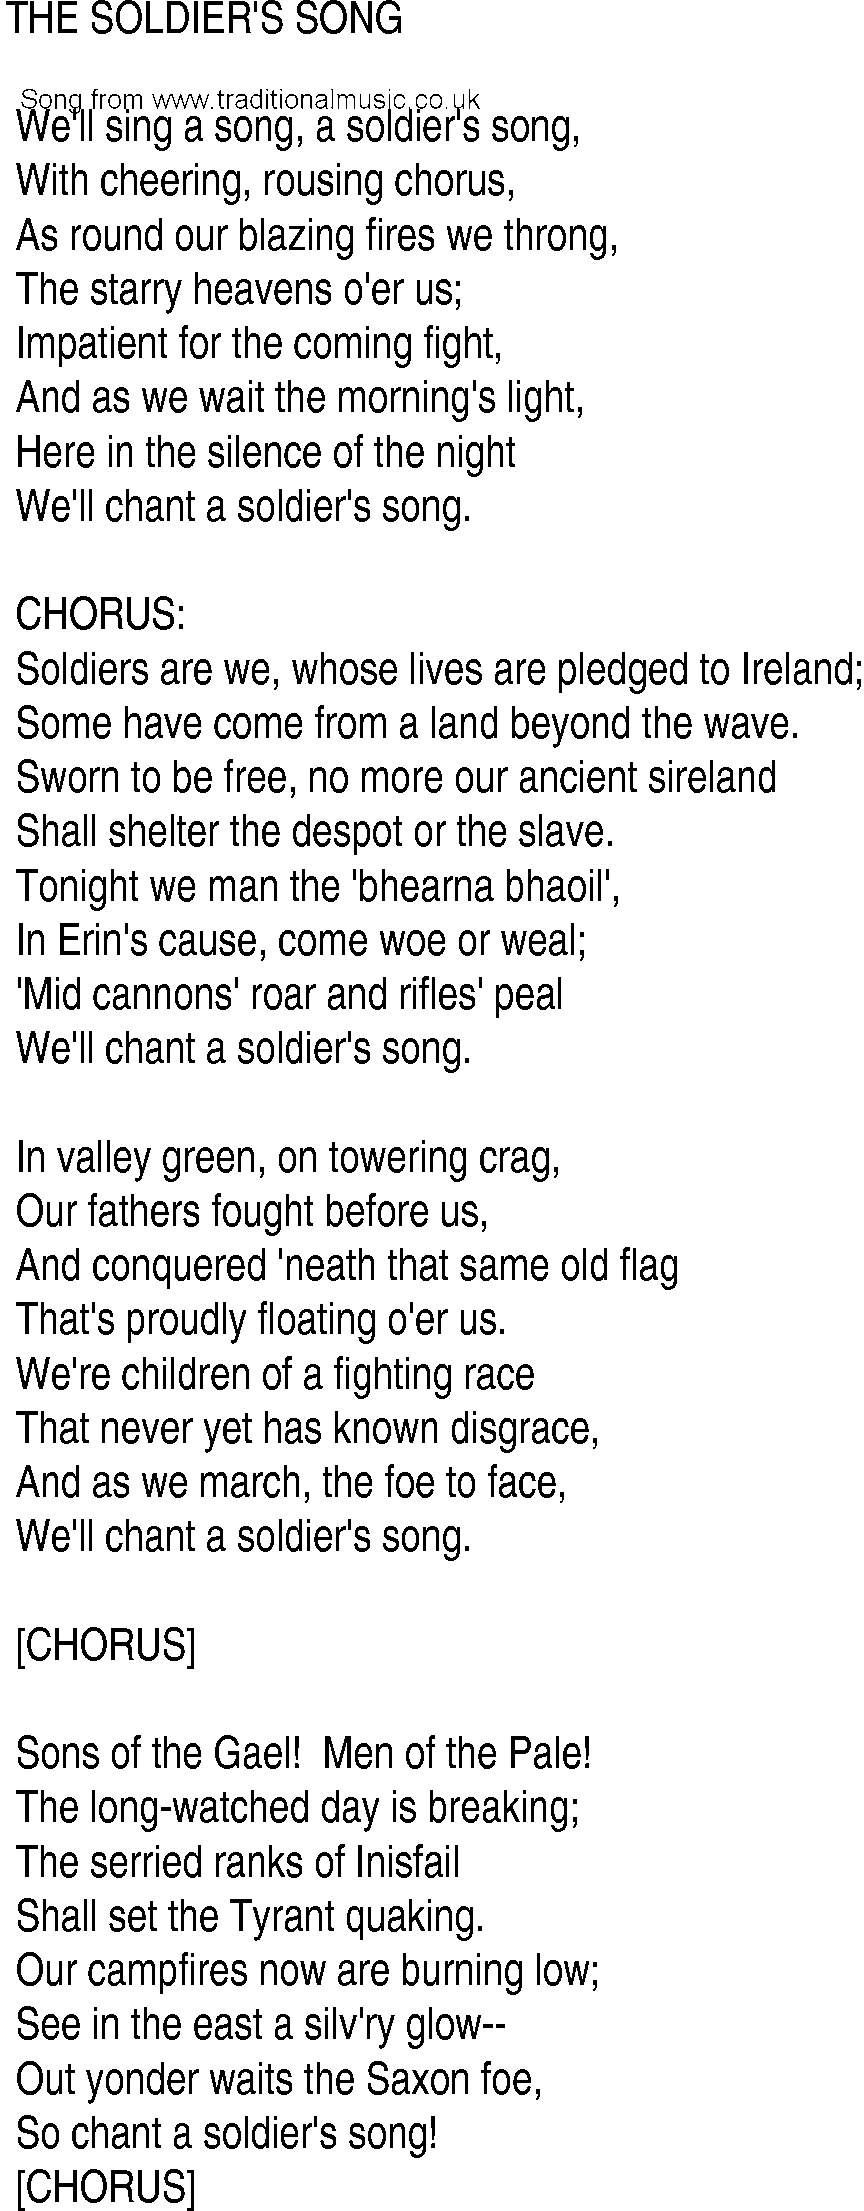 Irish Music, Song and Ballad Lyrics for: Soldiers Song